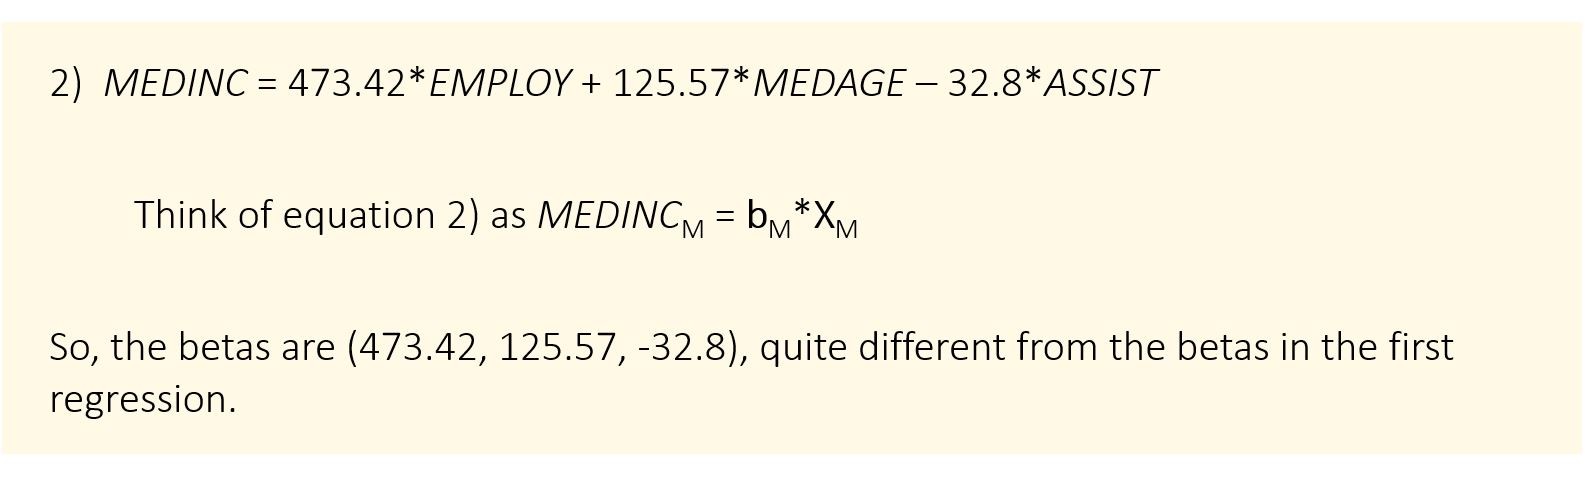 2) MEDINC = 473.42*EMPLOY + 125.57*MEDAGE – 32.8*ASSIST Think of equation 2) as MEDINCM = bM*XM So, the betas are (473.42, 125.57, -32.8), quite different from the betas in the first regression.